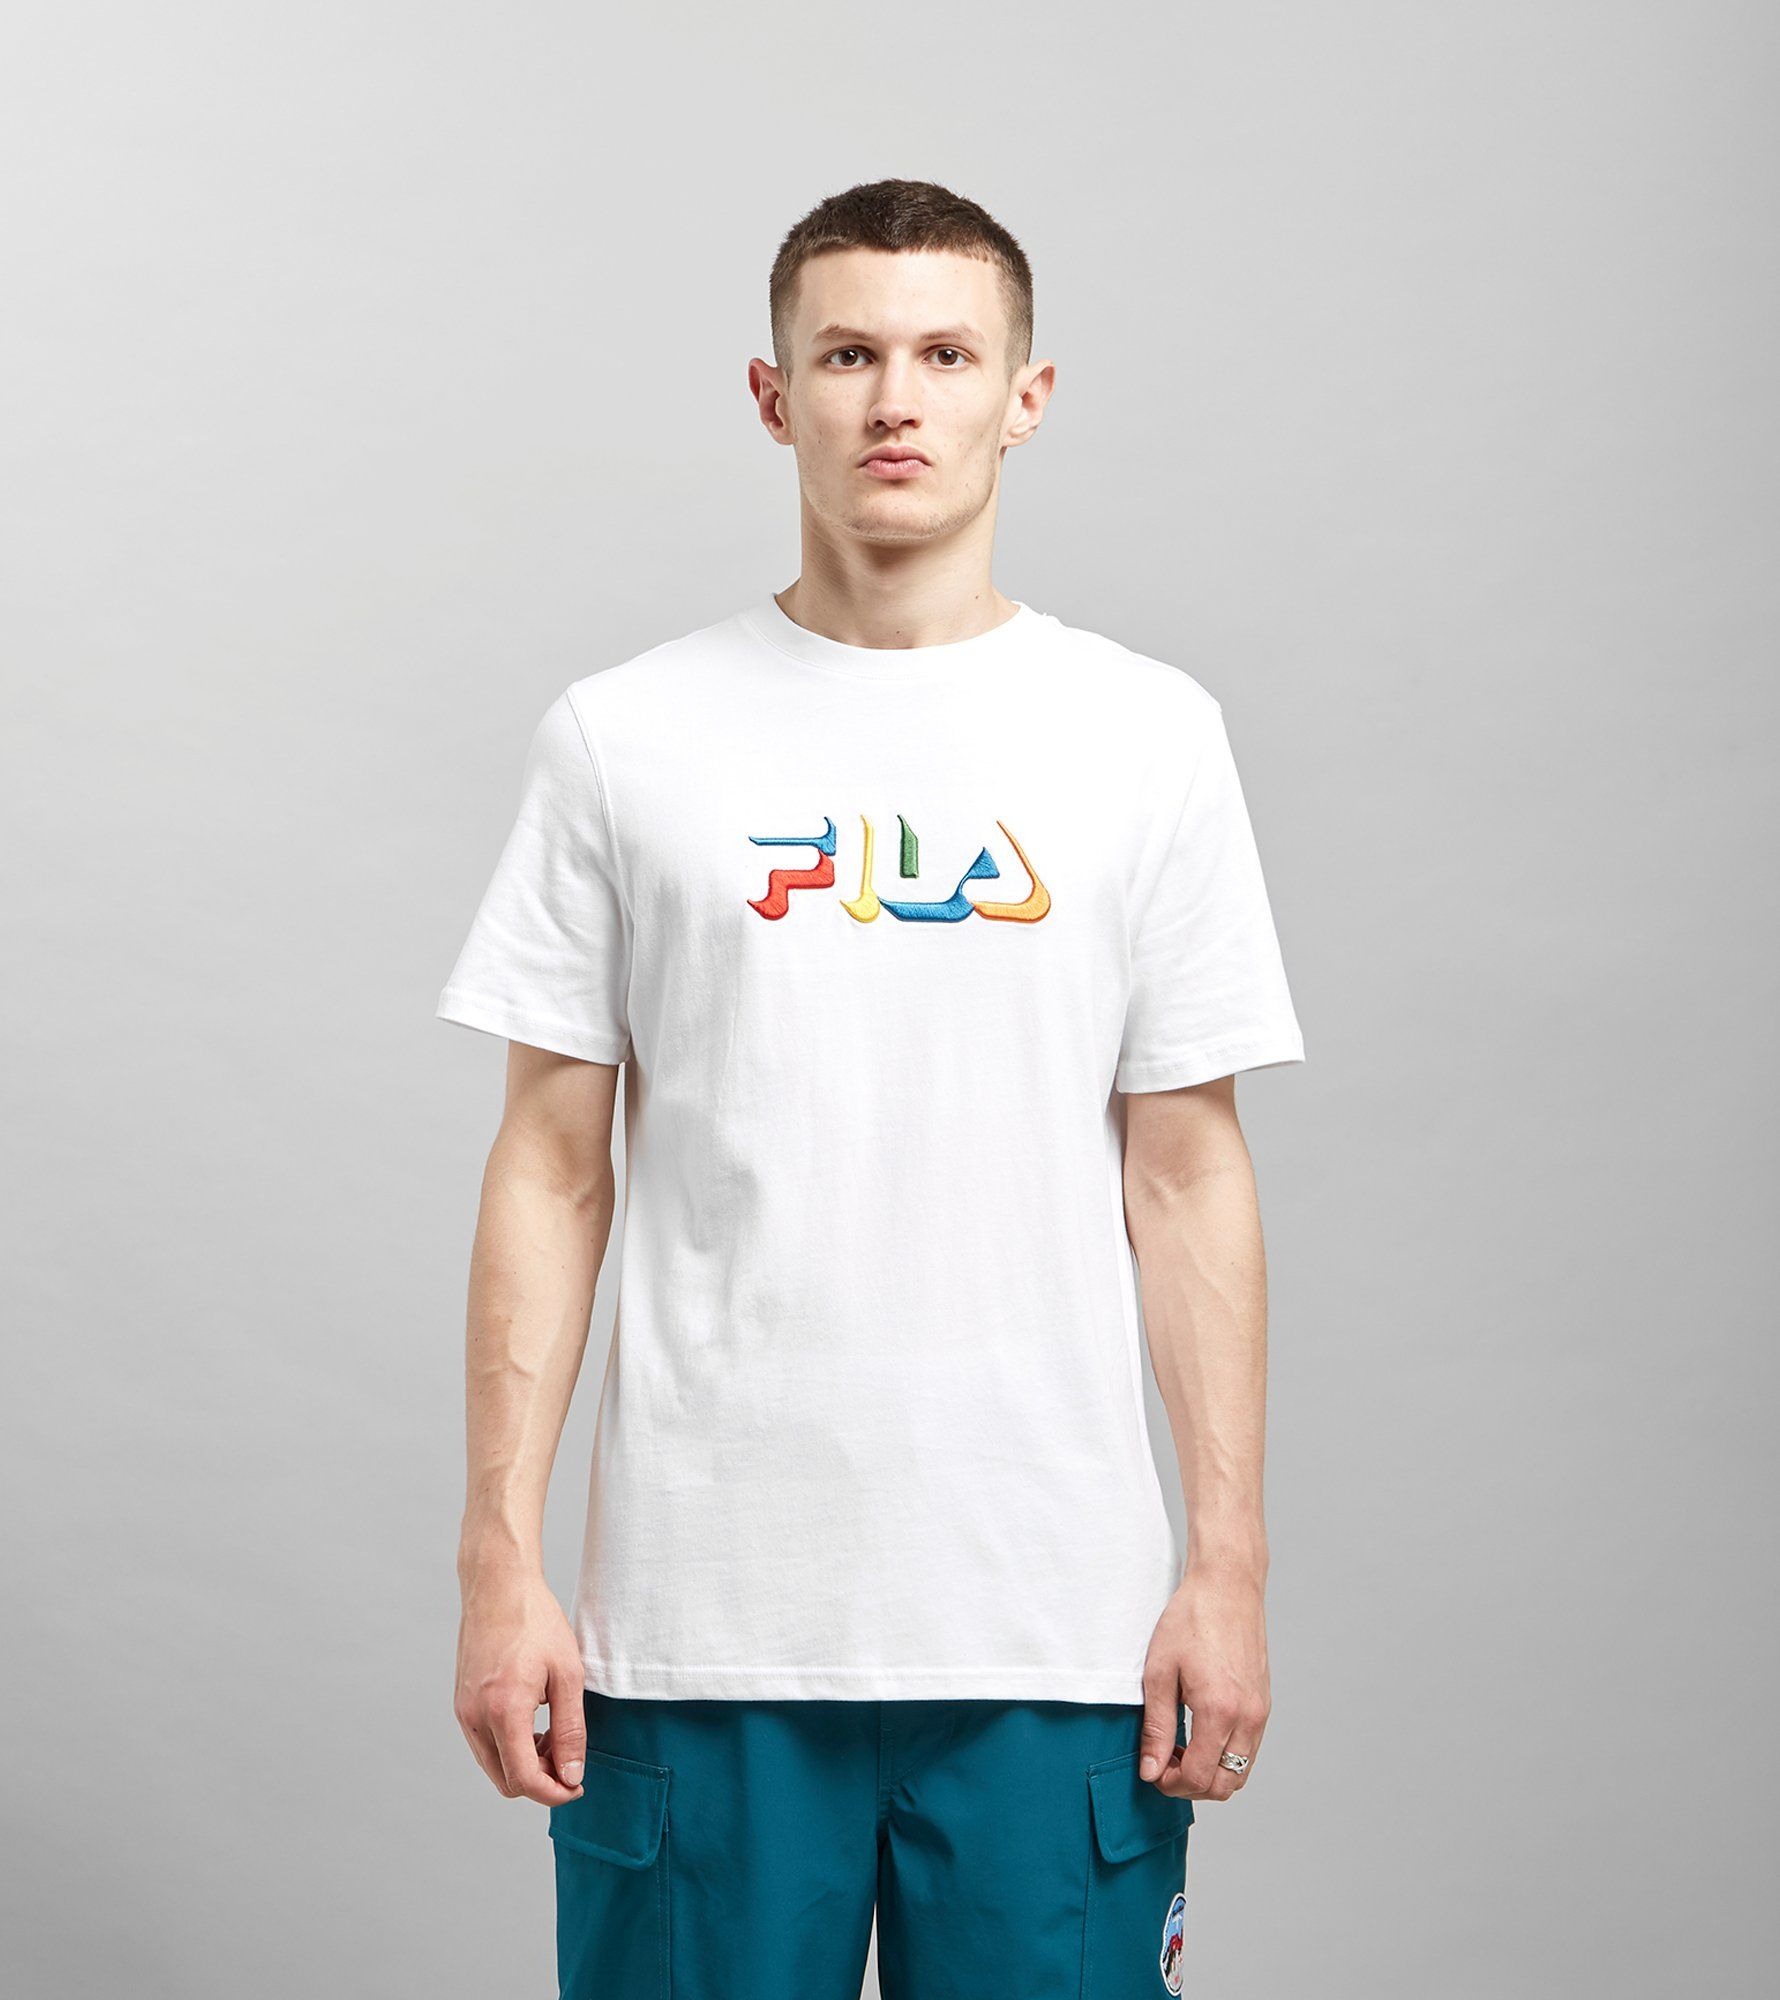 Fila Etna Short Sleeve T-Shirt